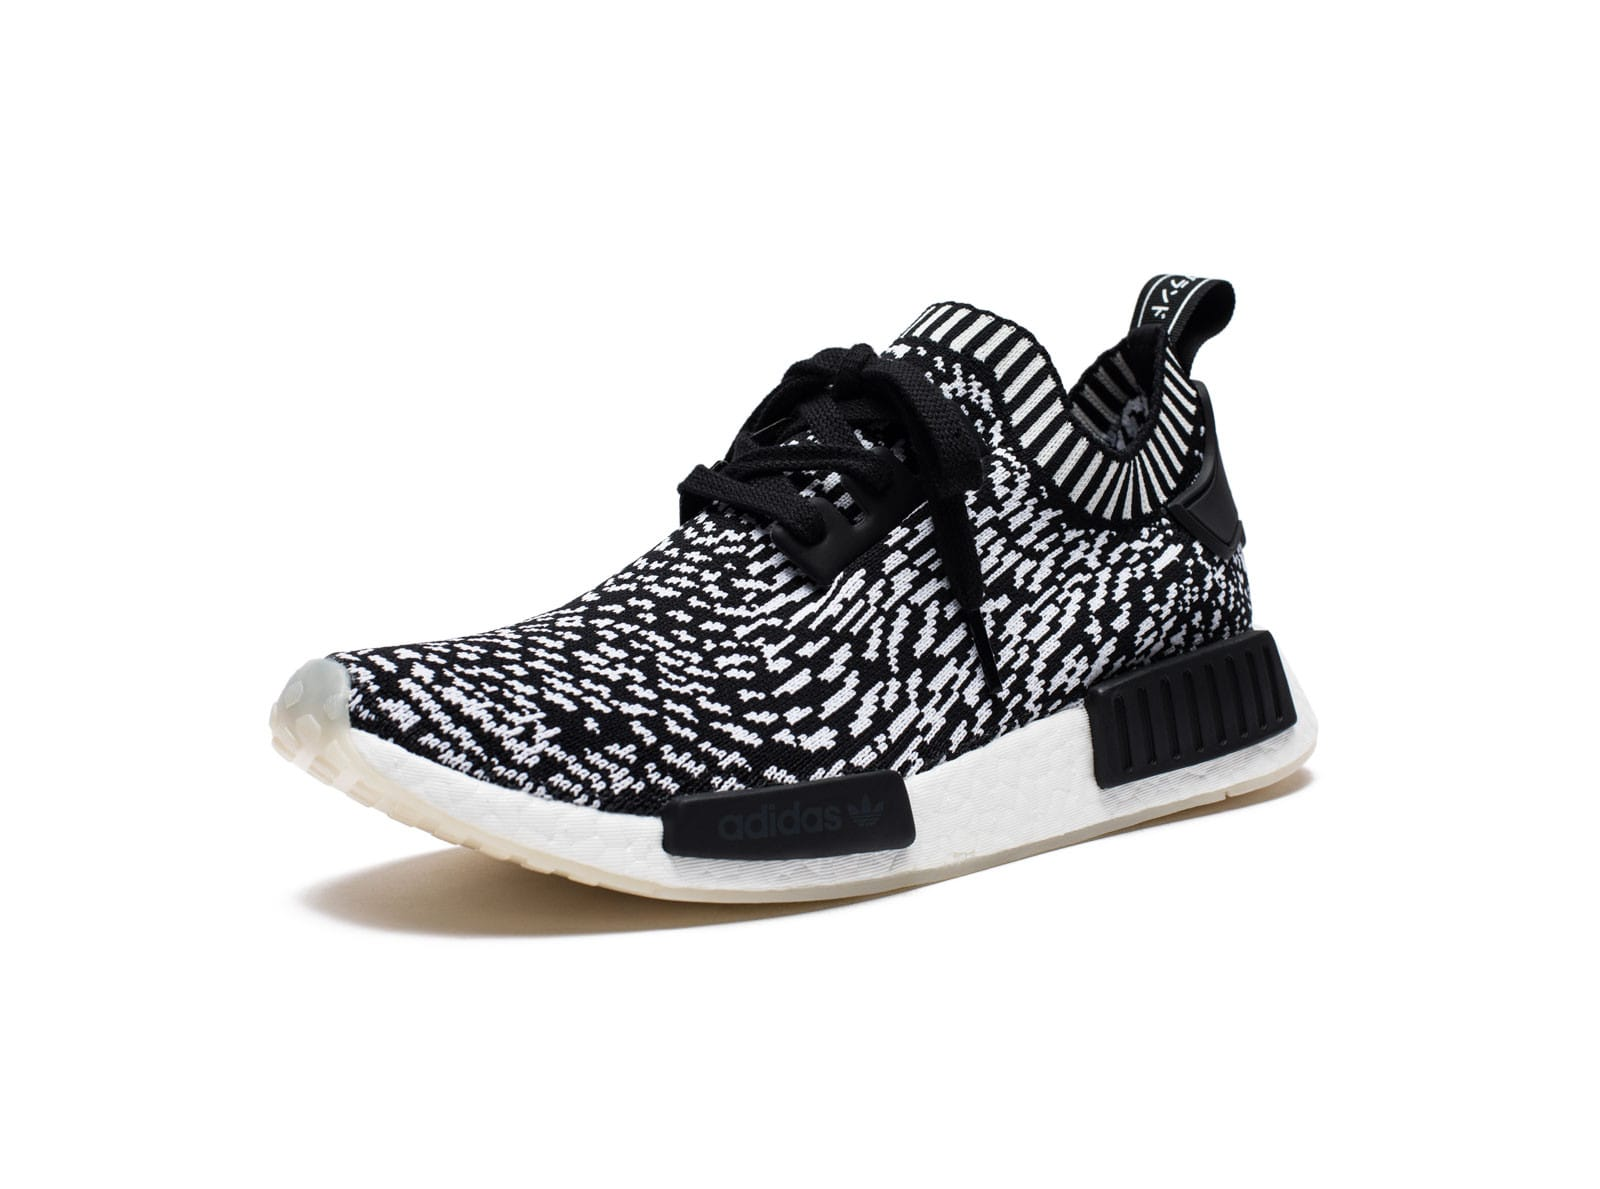 NMD R1 PK - BLACK/WHITE